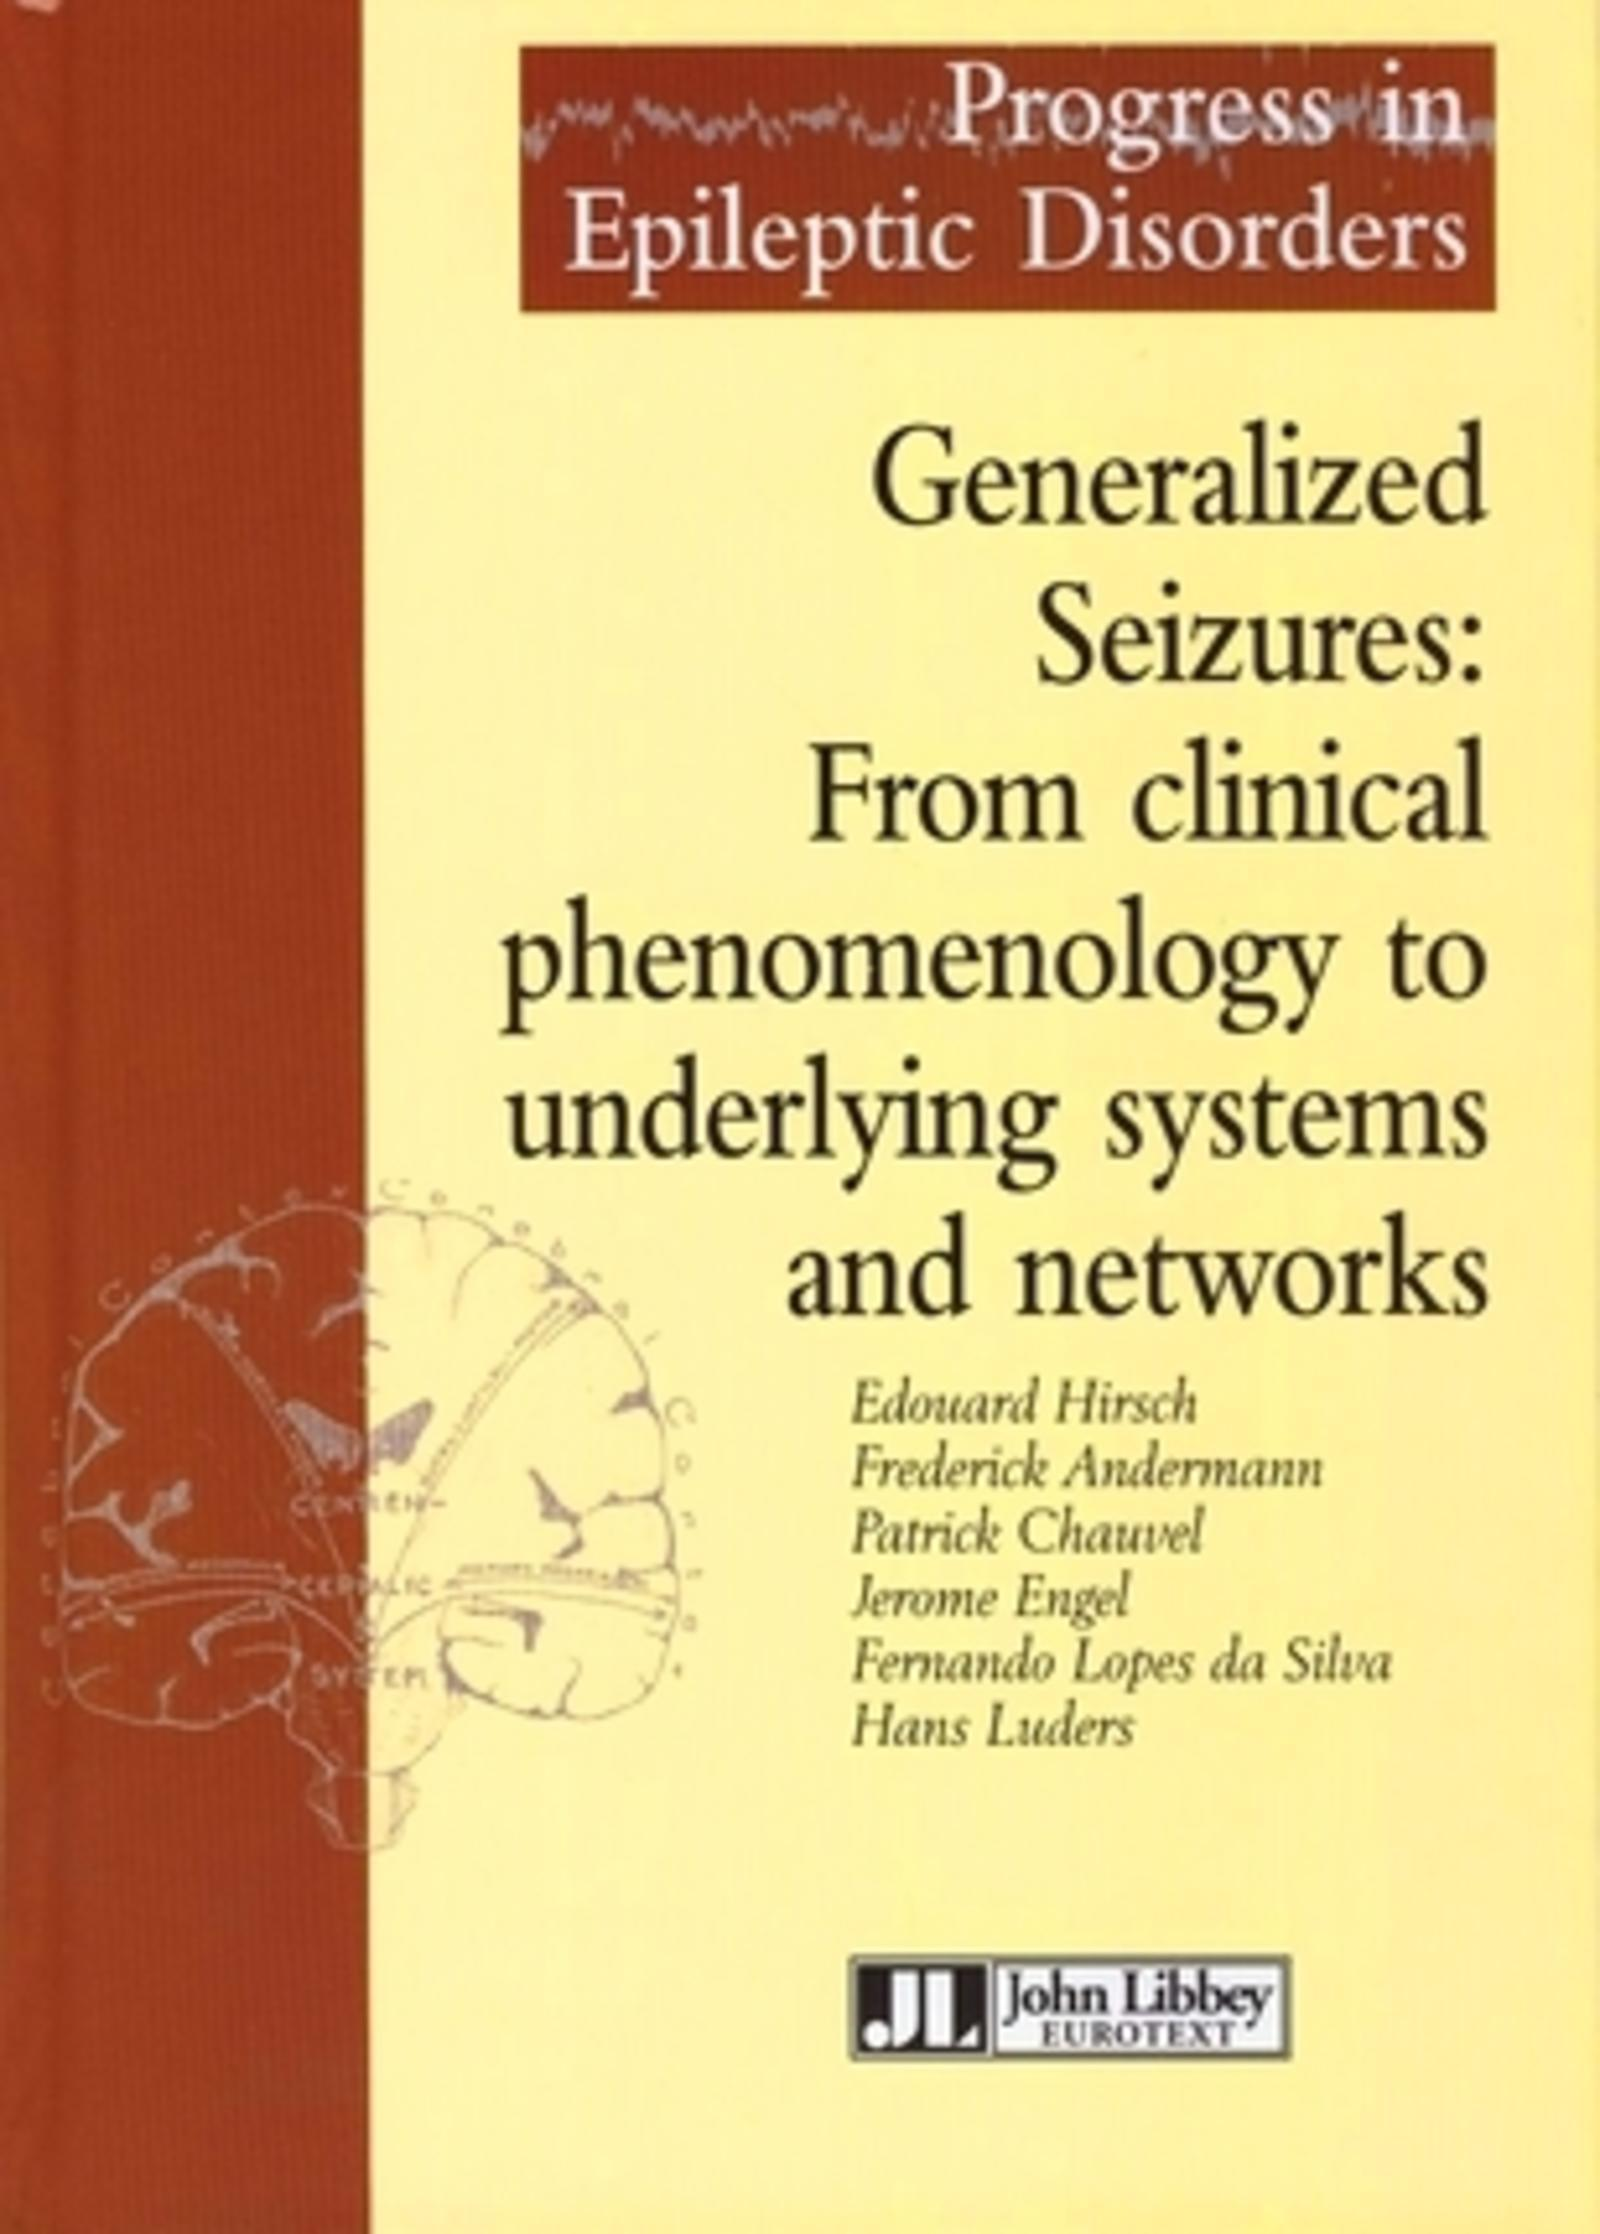 GENERALIZED SEIZURES : FROM CLINICAL PHENOMENOLOGY TO UNDERLYING SYSTEMS AND NET